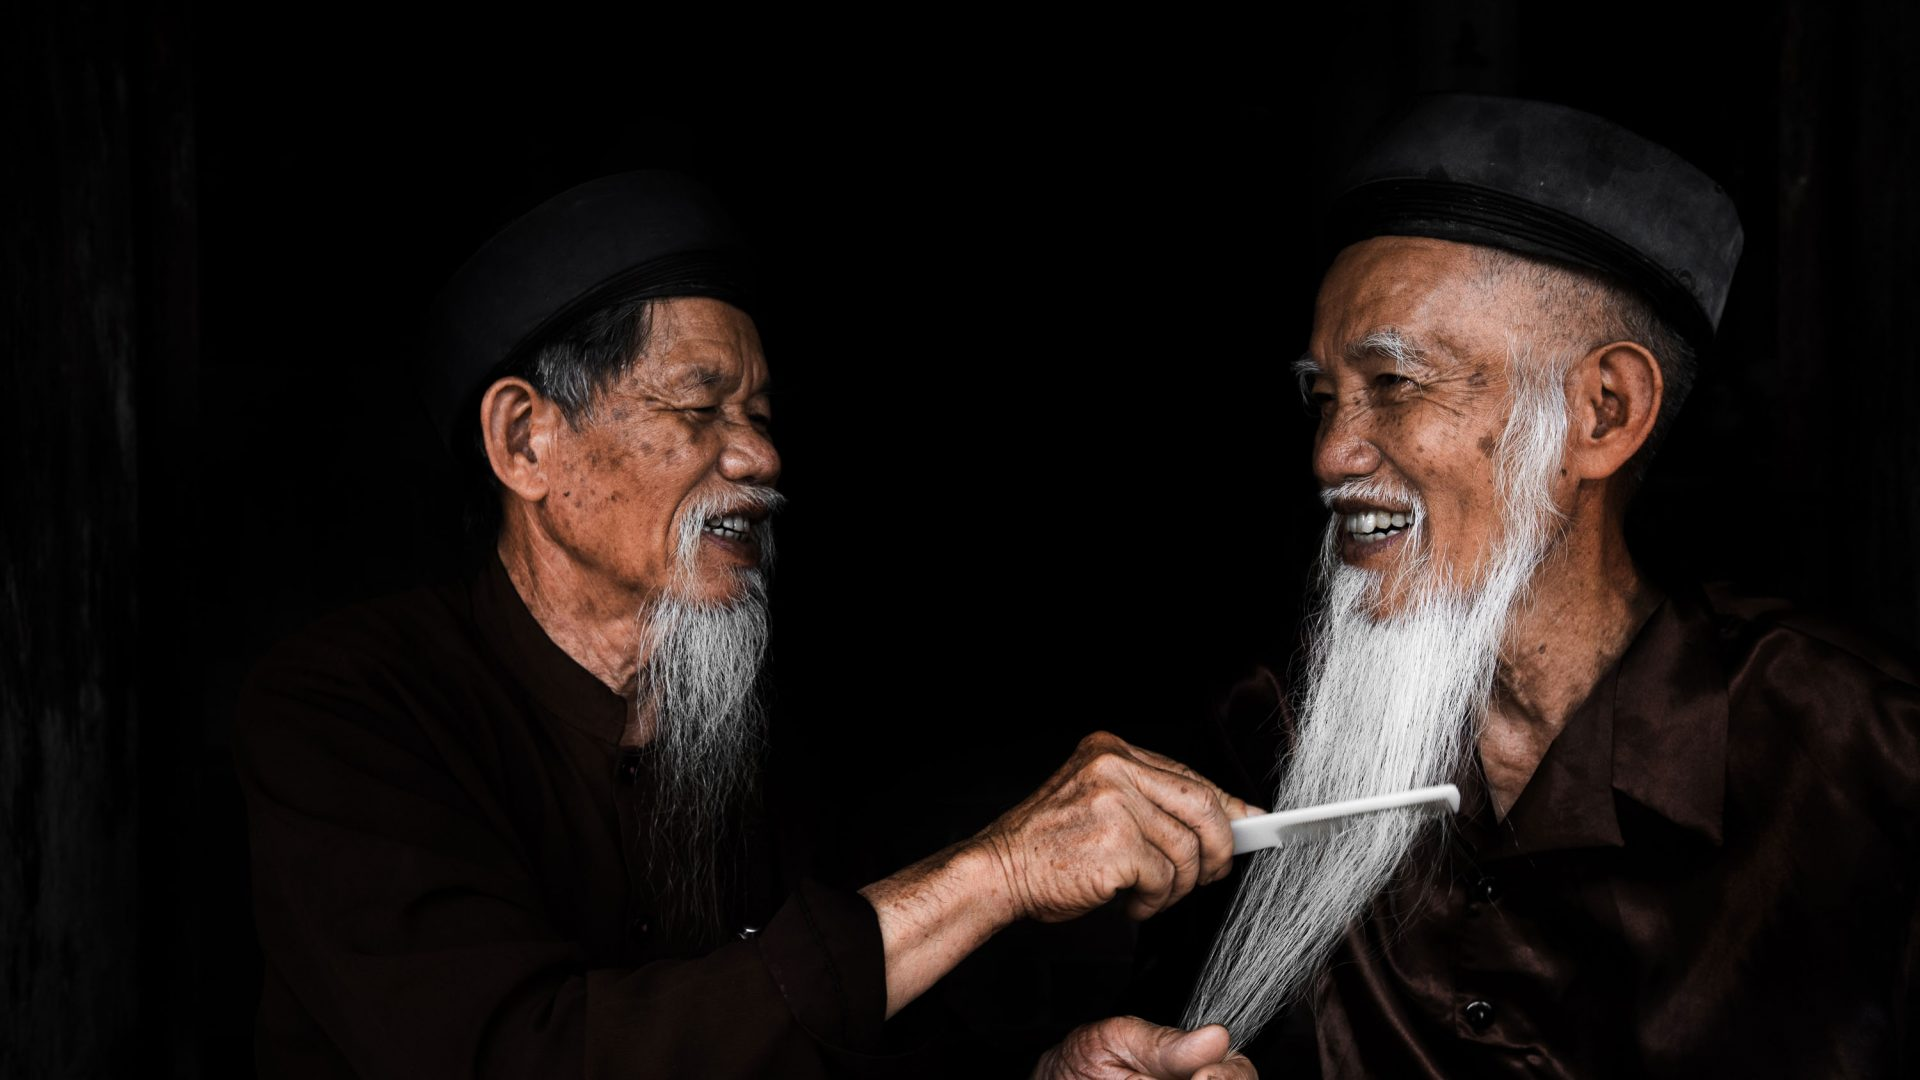 Two men brush each other's beards in Vietnam.